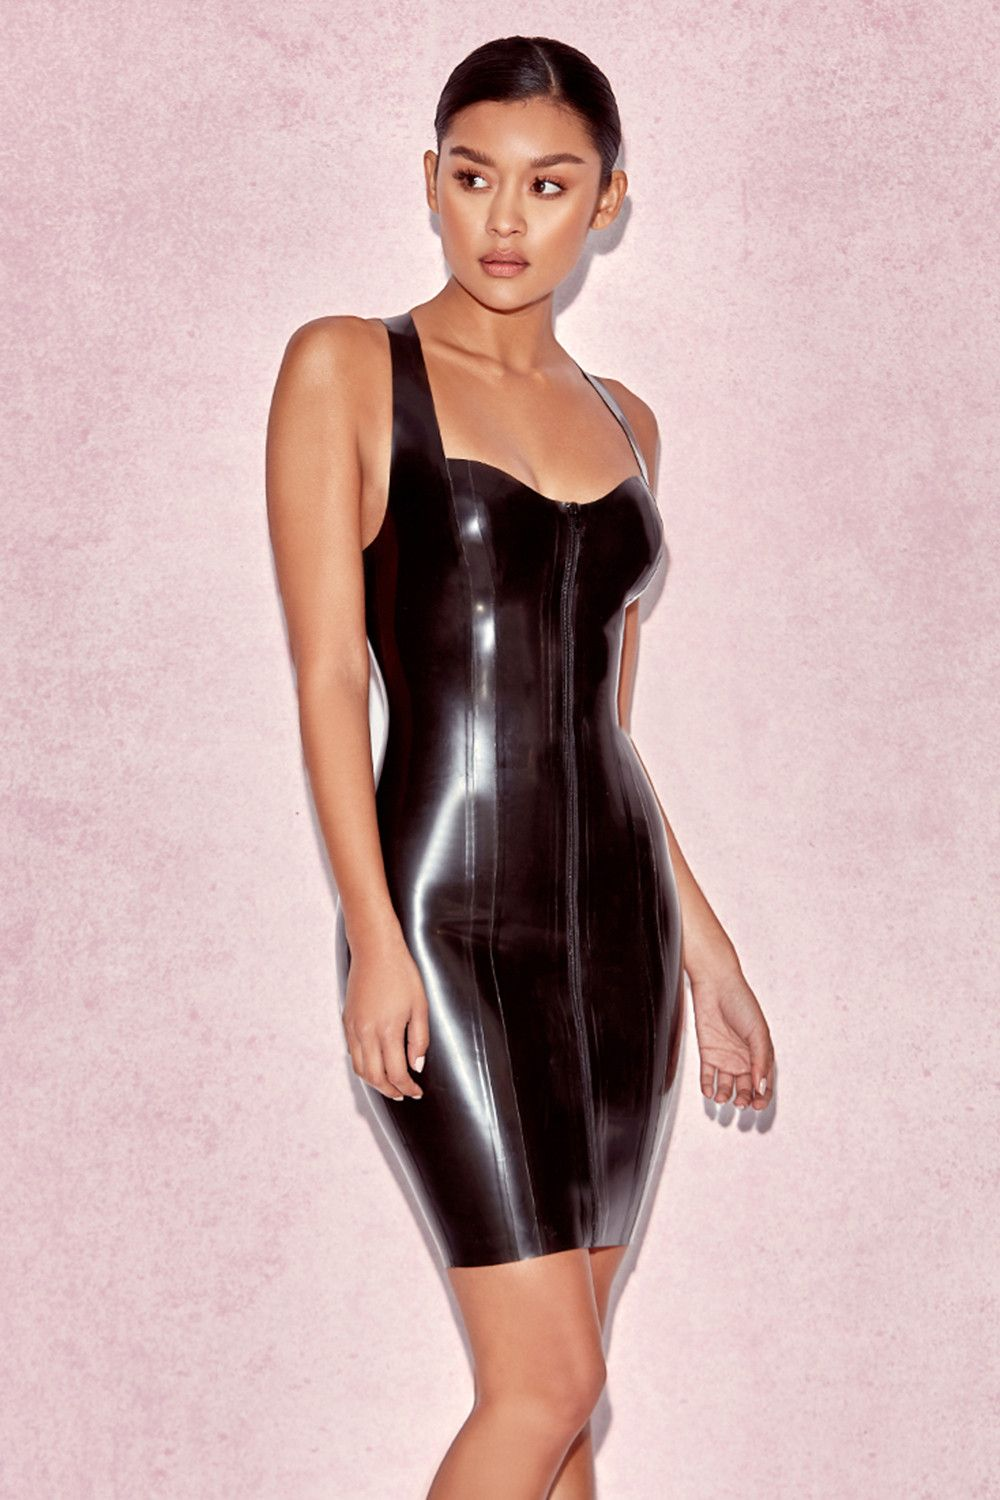 Tahira Black Latex Racer Back Dress | Date Night Outfit | Pinterest